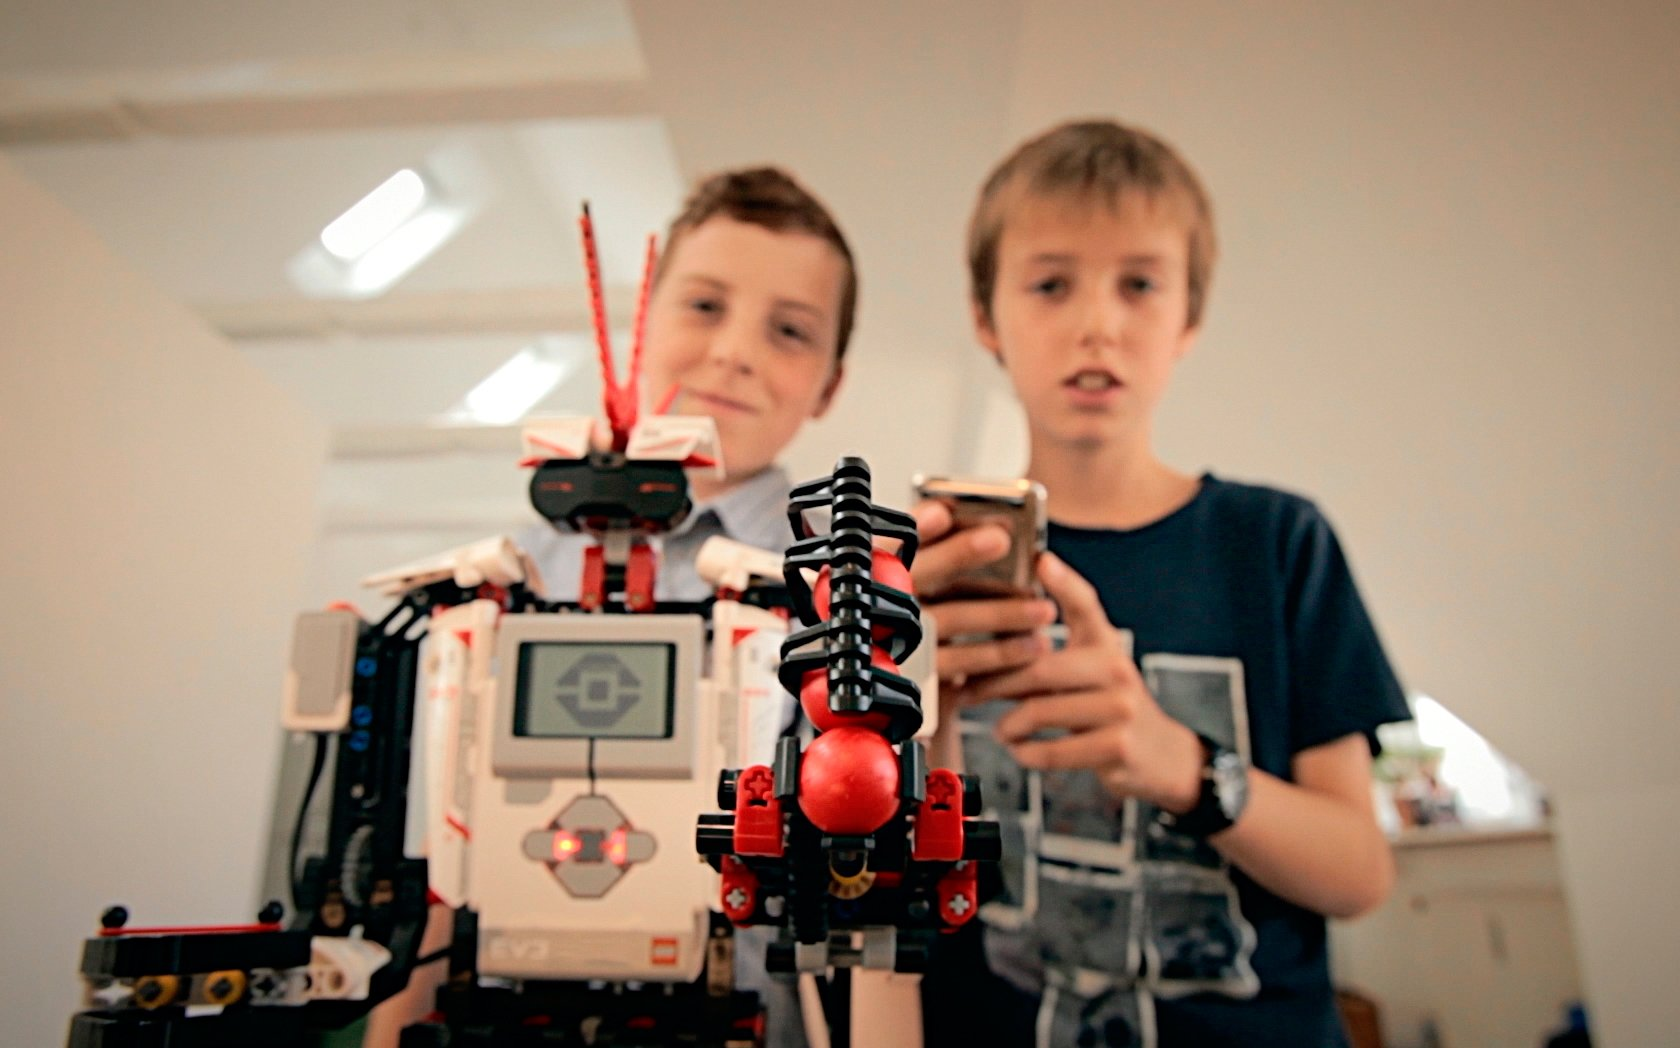 robotics competition for adults